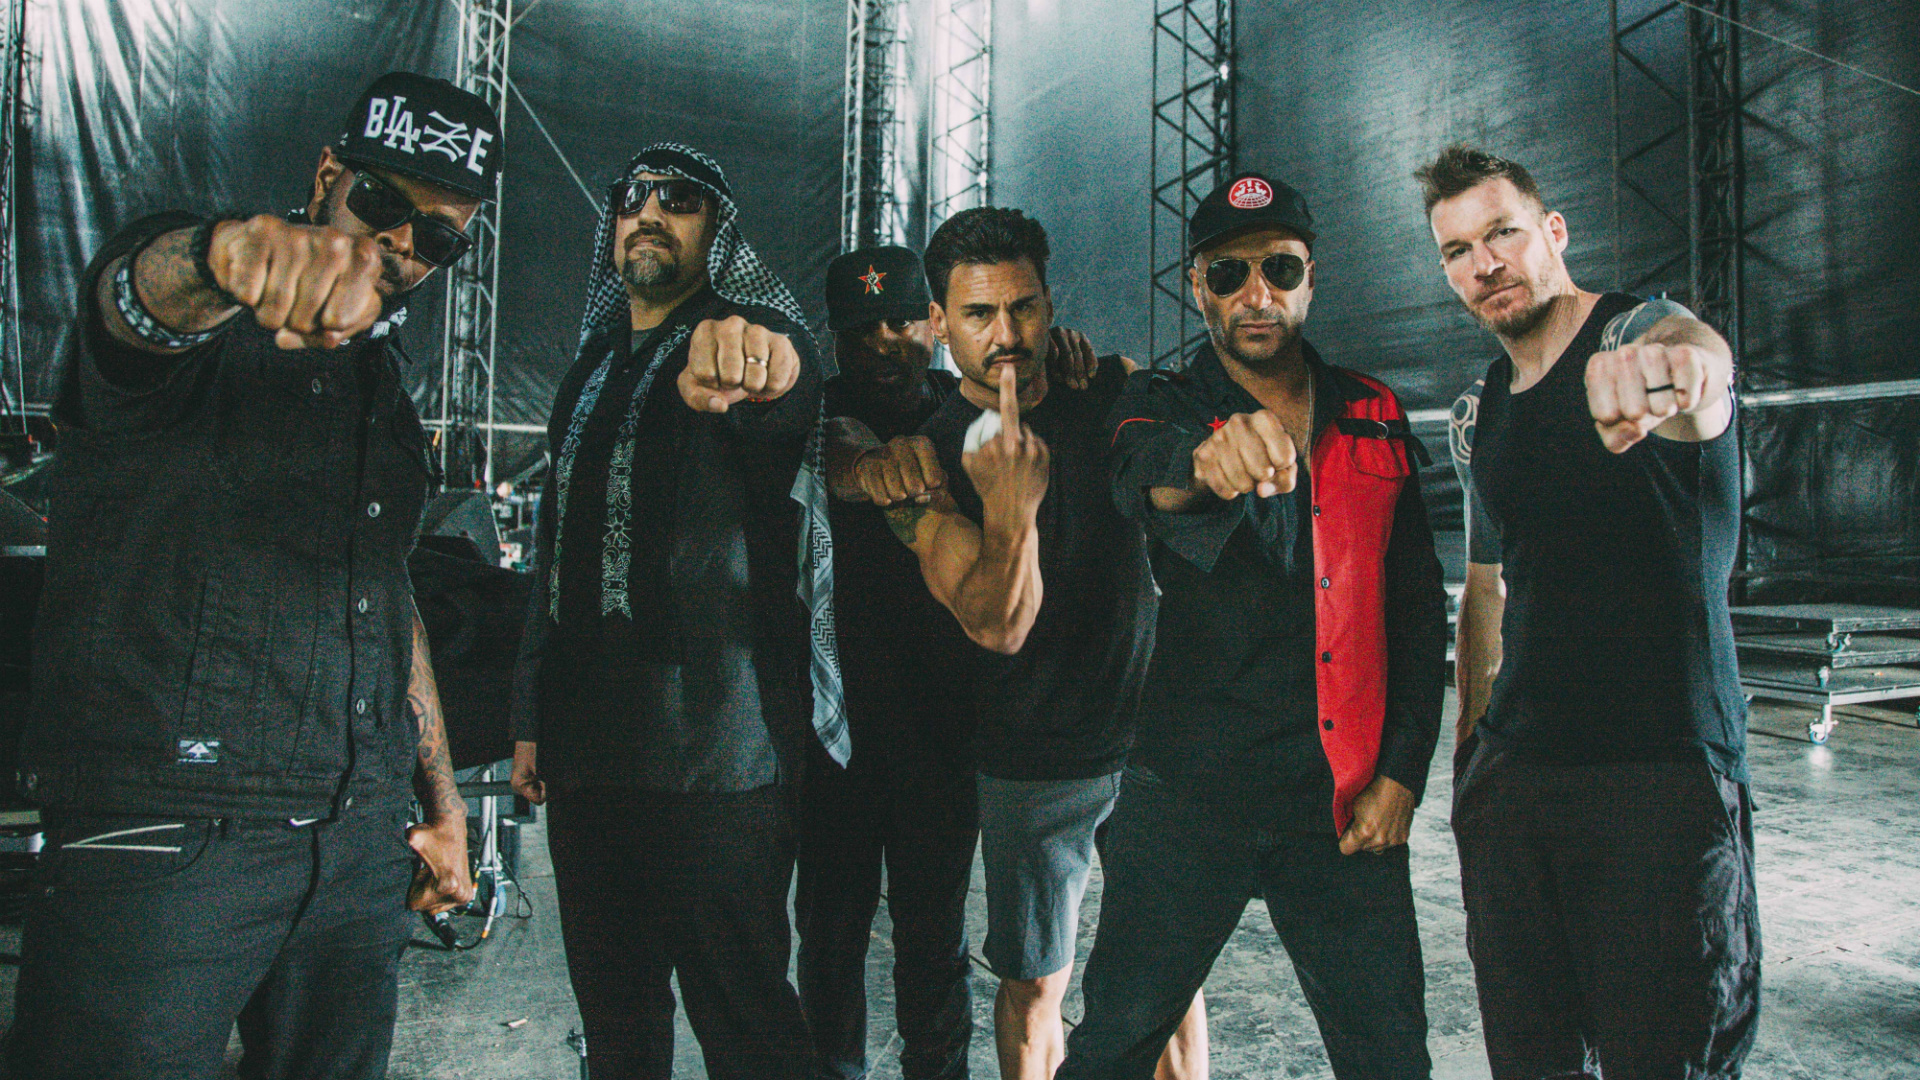 Made With Hate: Ponle play a lo nuevo de Prophets Of Rage